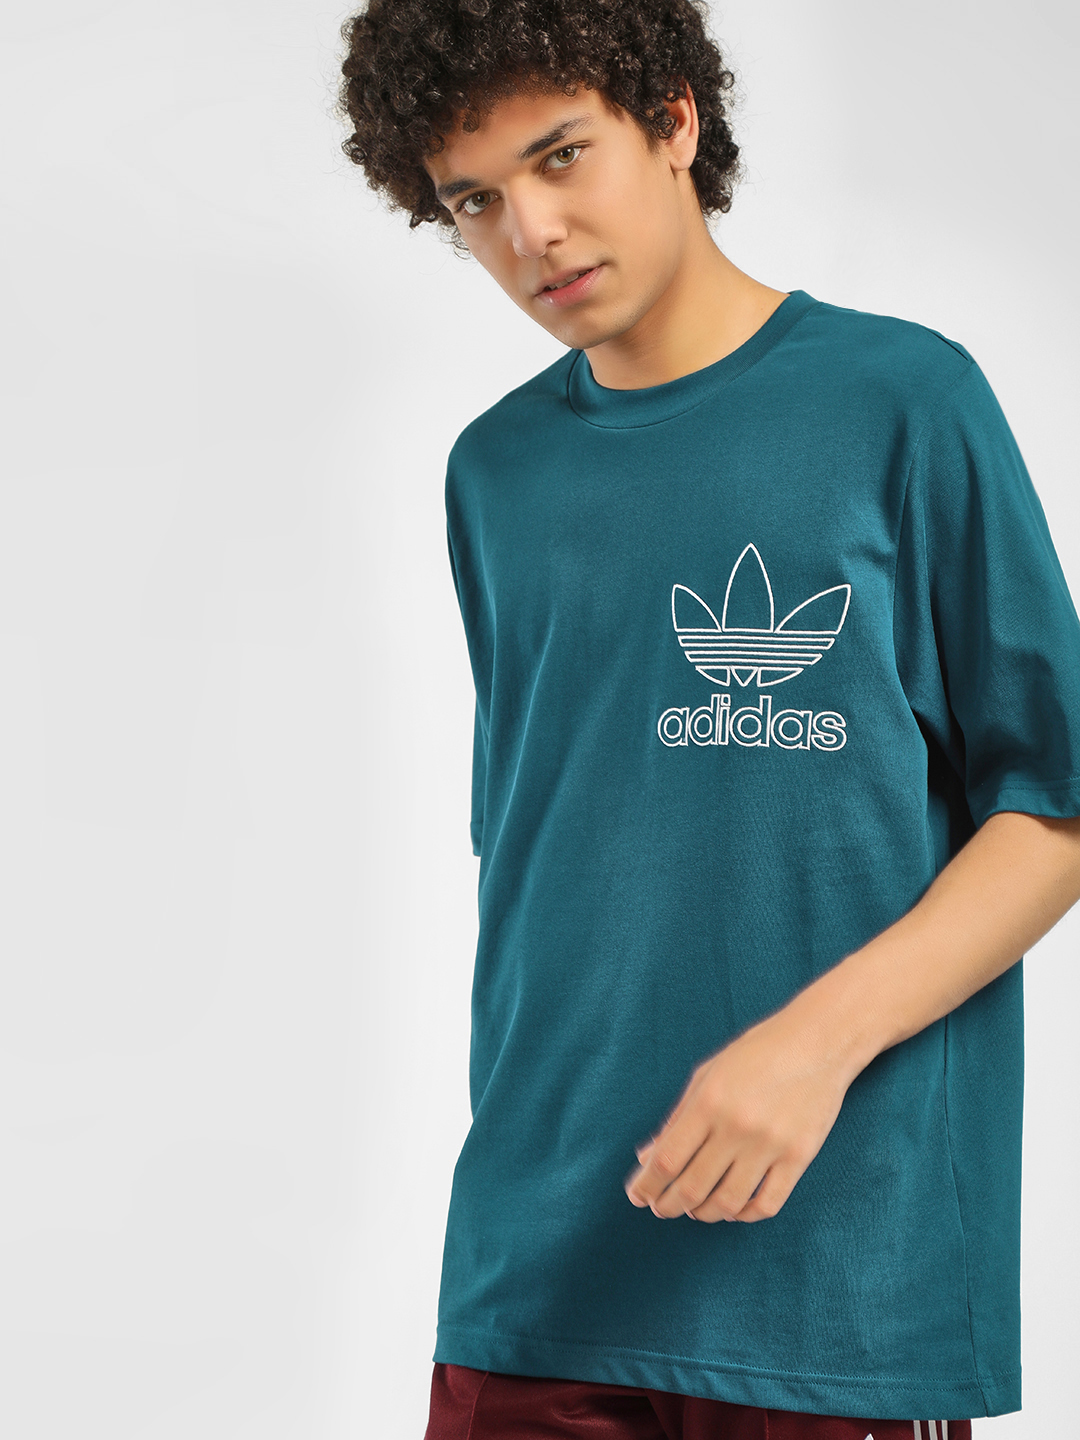 Adidas Originals Blue Outline T-Shirt 1